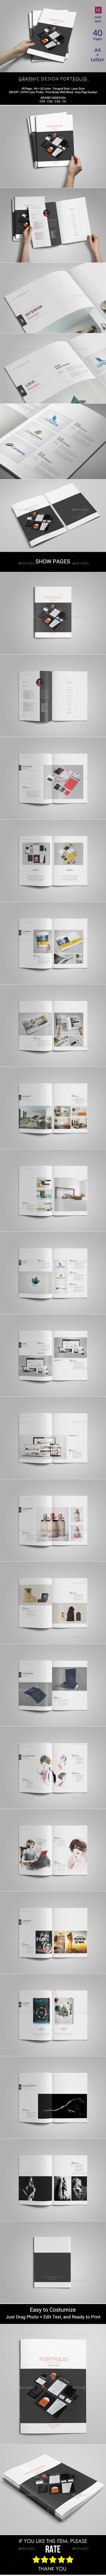 Graphic Design Portfolio Brochure Template PSD #design Download: http://graphicriver.net/item/graphic-design-portfolio-template/13500345?ref=ksioks